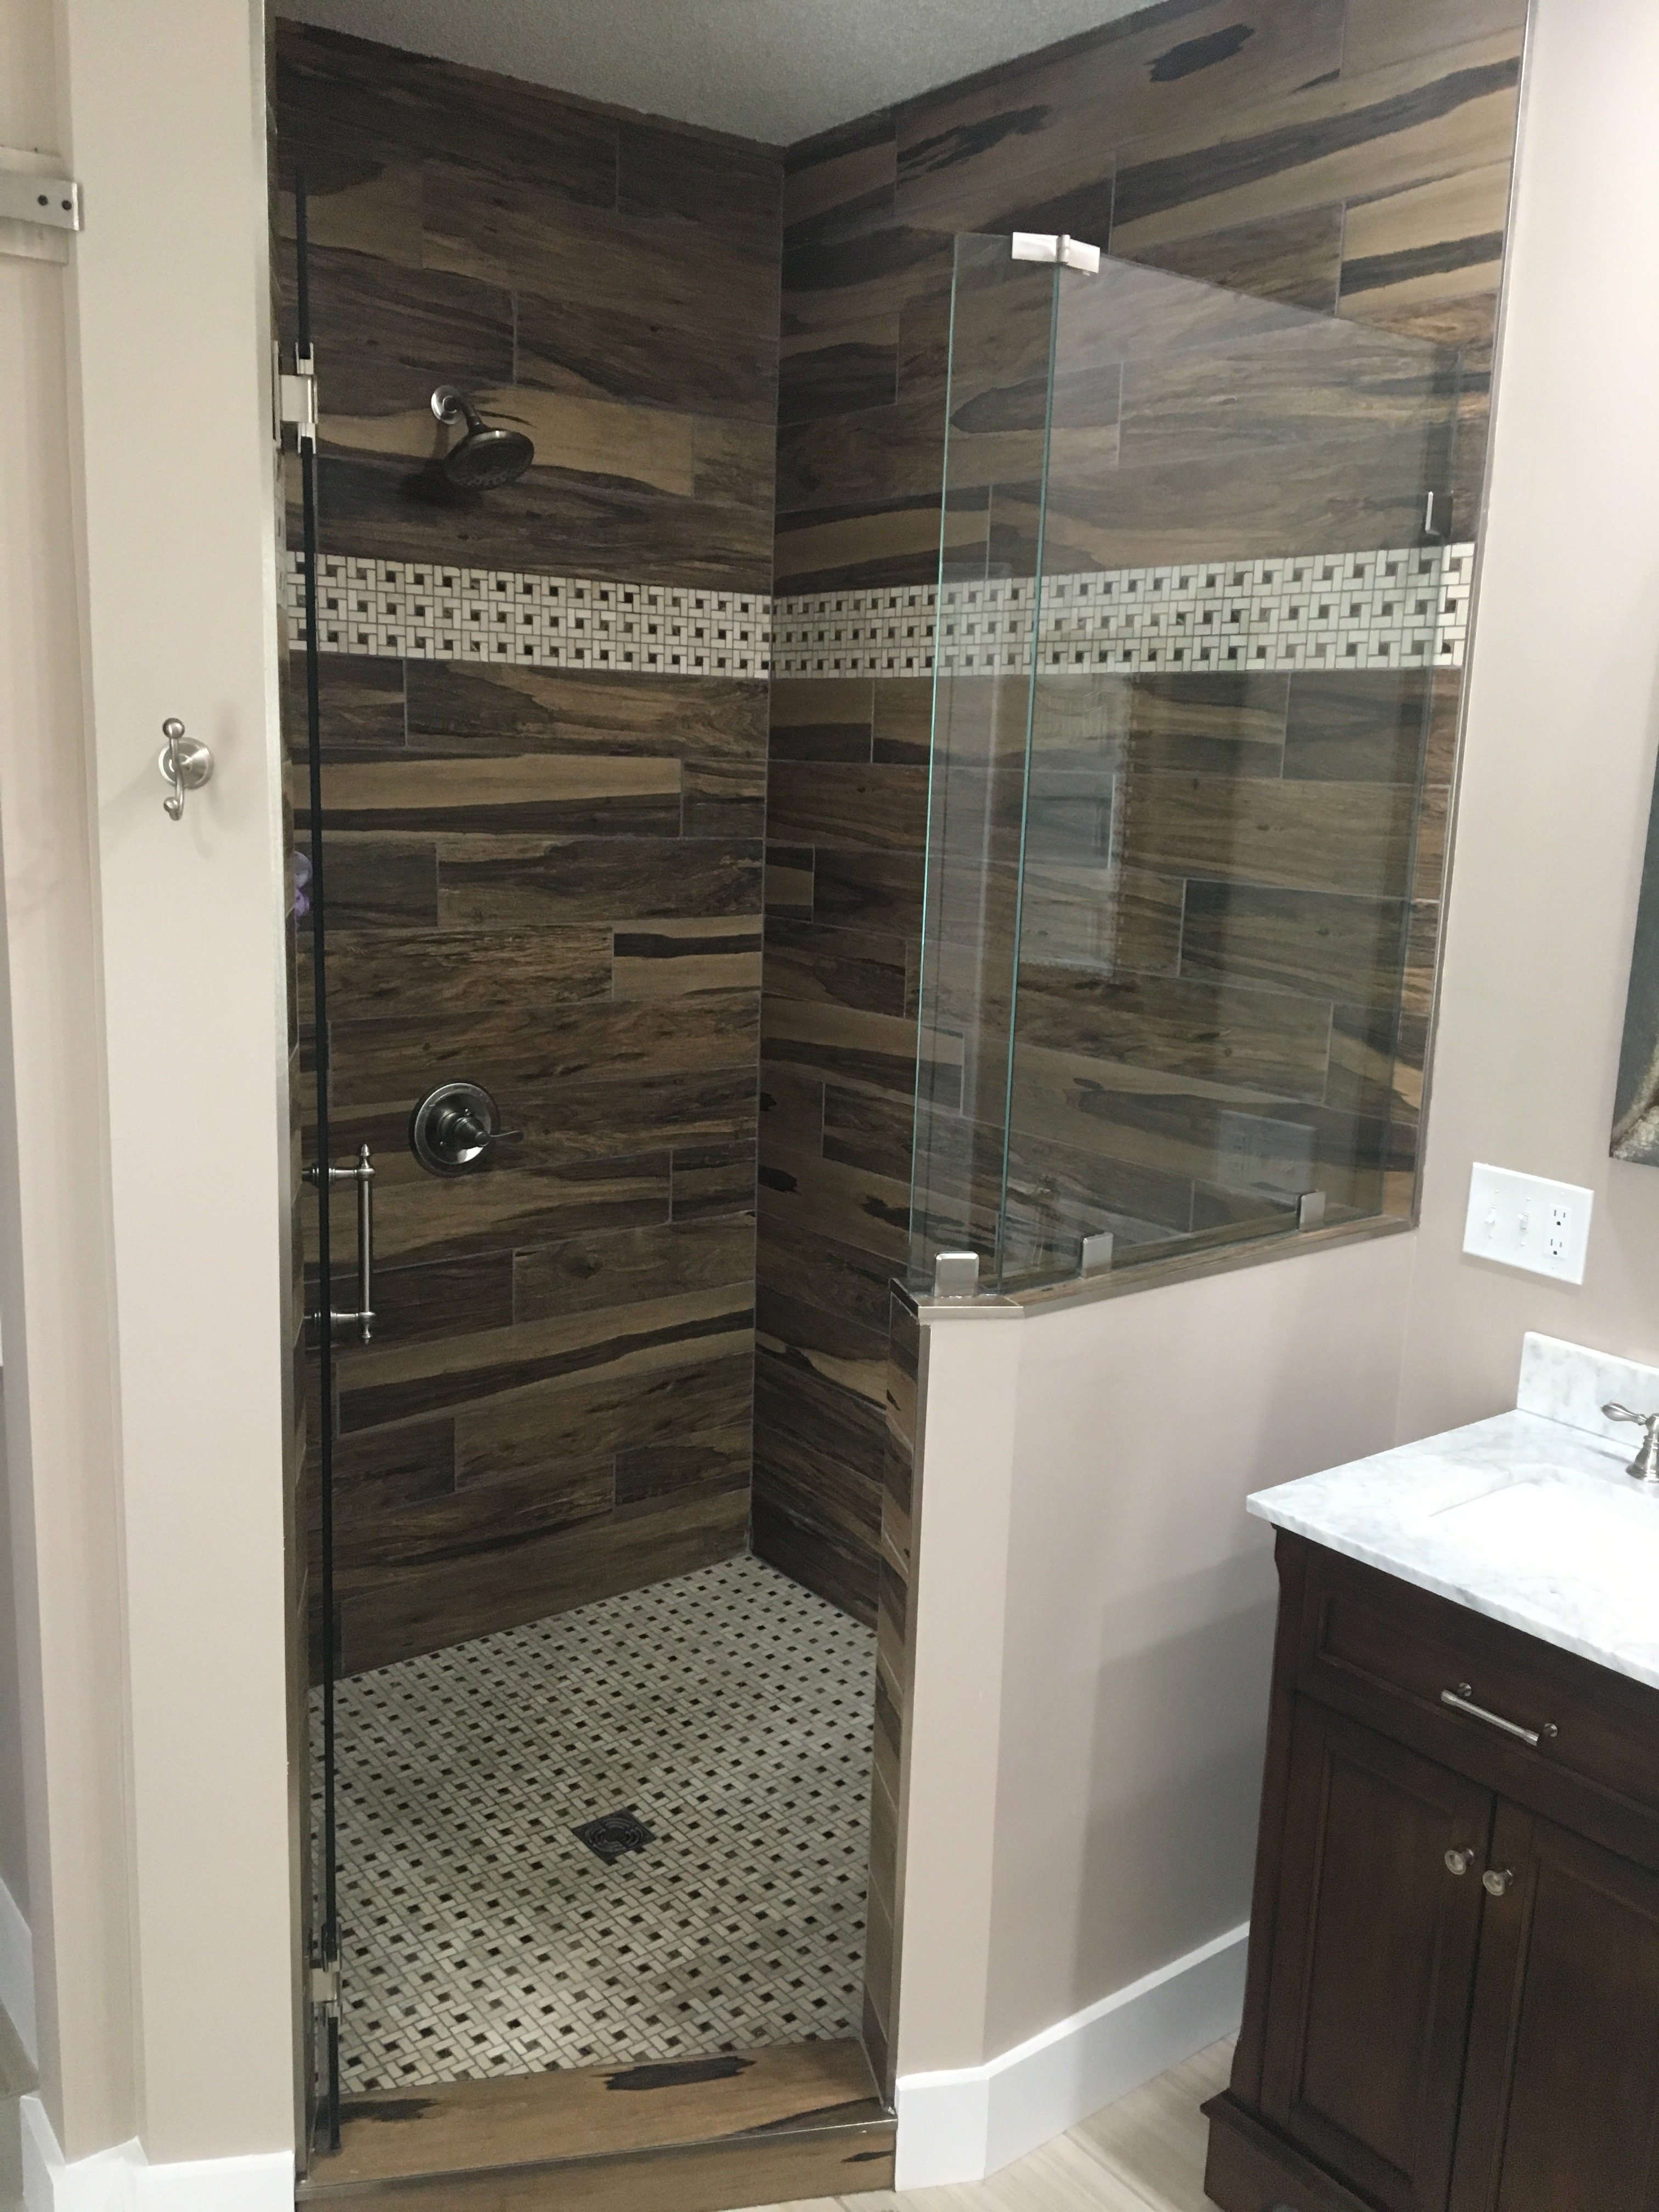 Knoxvilles Bathroom Remodeling Specialists Summit PNR - Bathroom consultation